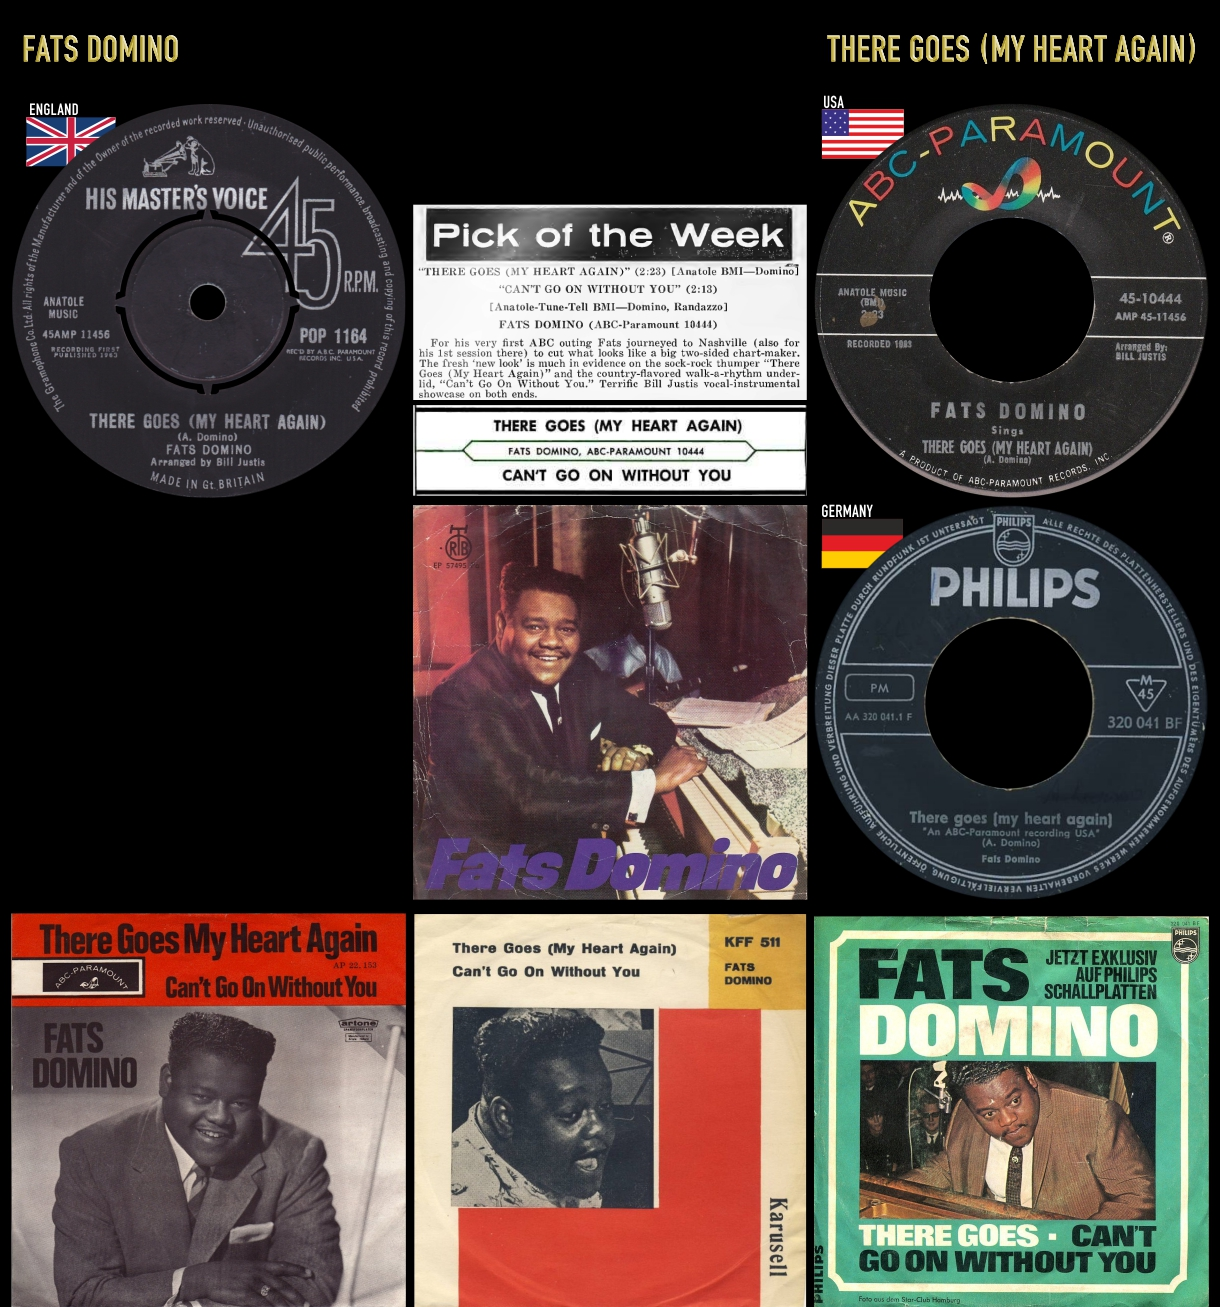 630518_Fats Domino_There Goes